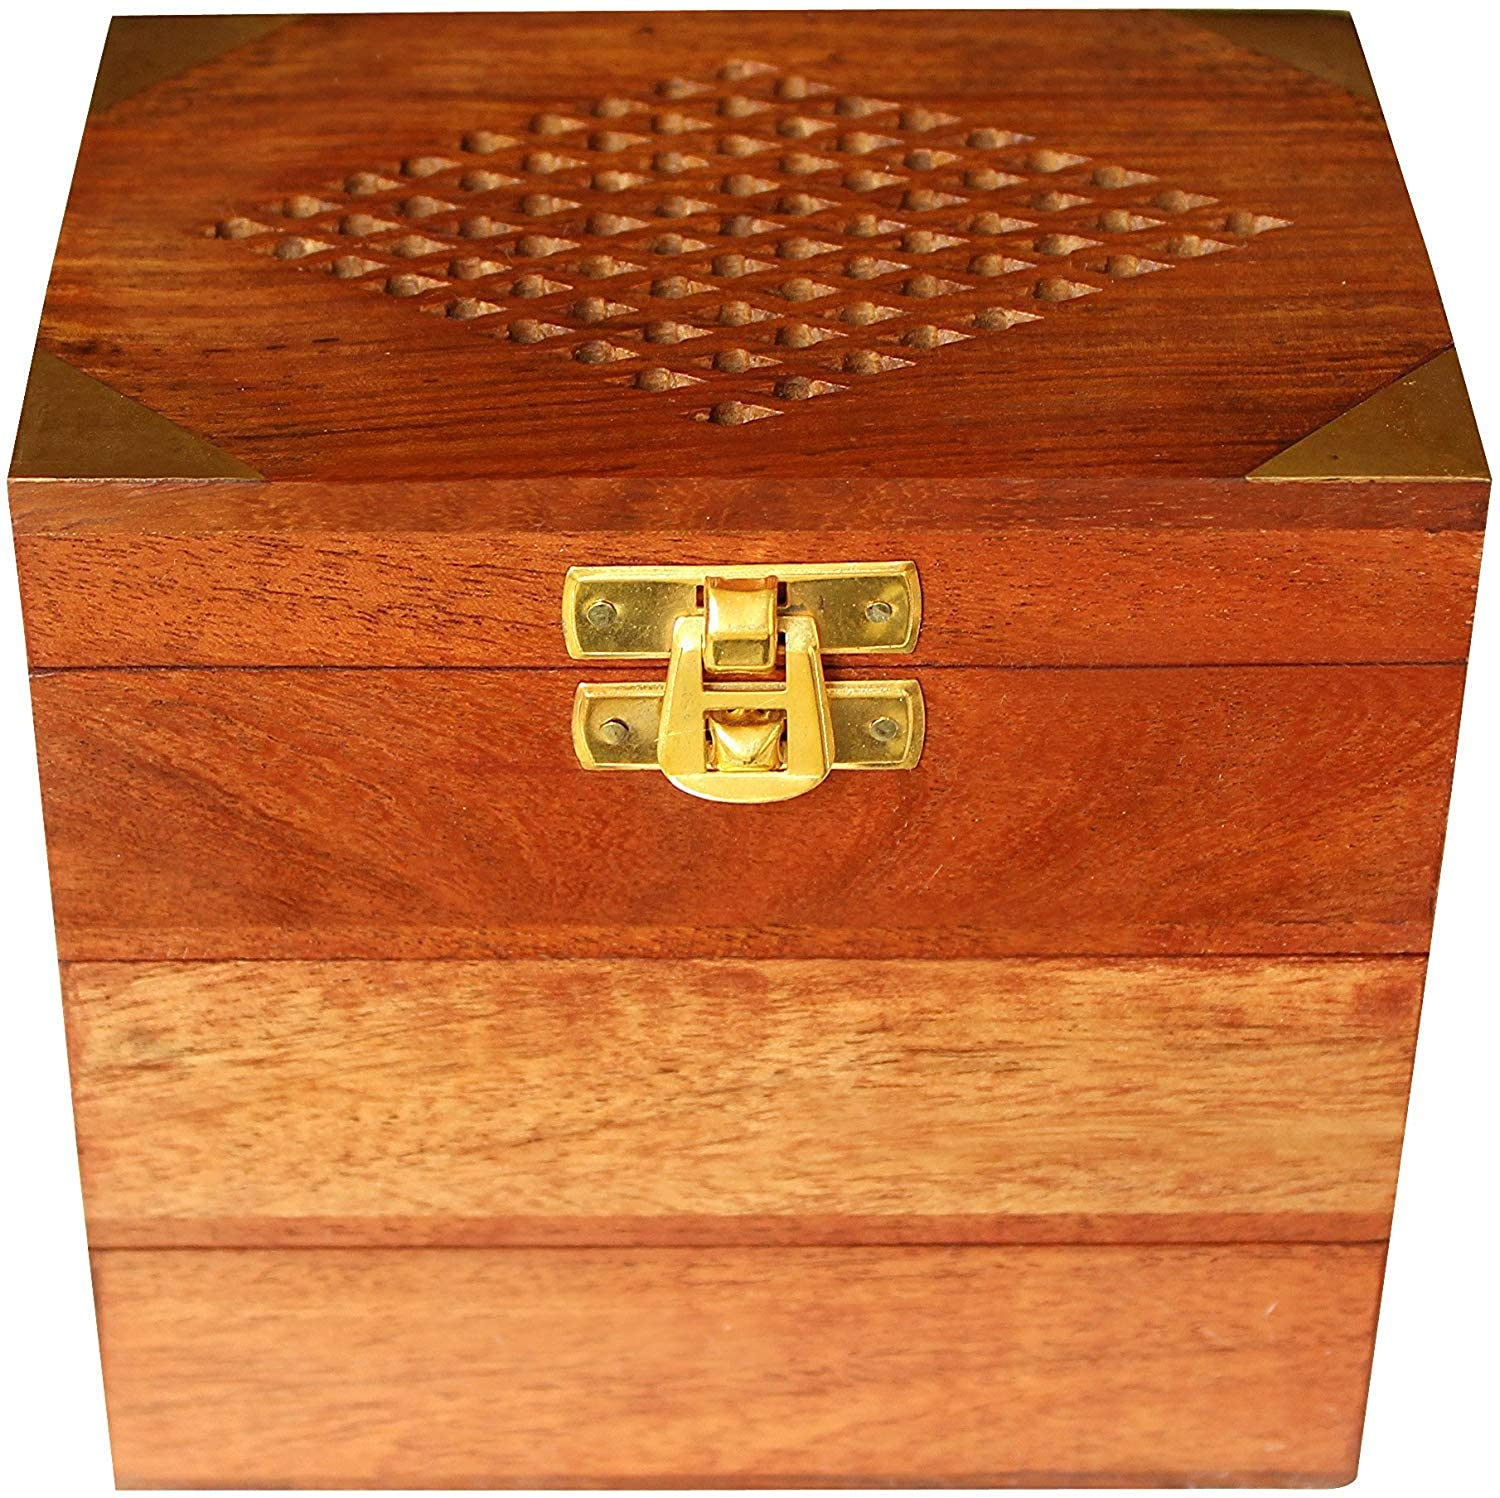 Sheesham Wood Jewellery Box for Women Jewel Organizer Box Hand Carved Carvings, Small Box (5.5 X 3.5 X 3.5 inches) Gift Items